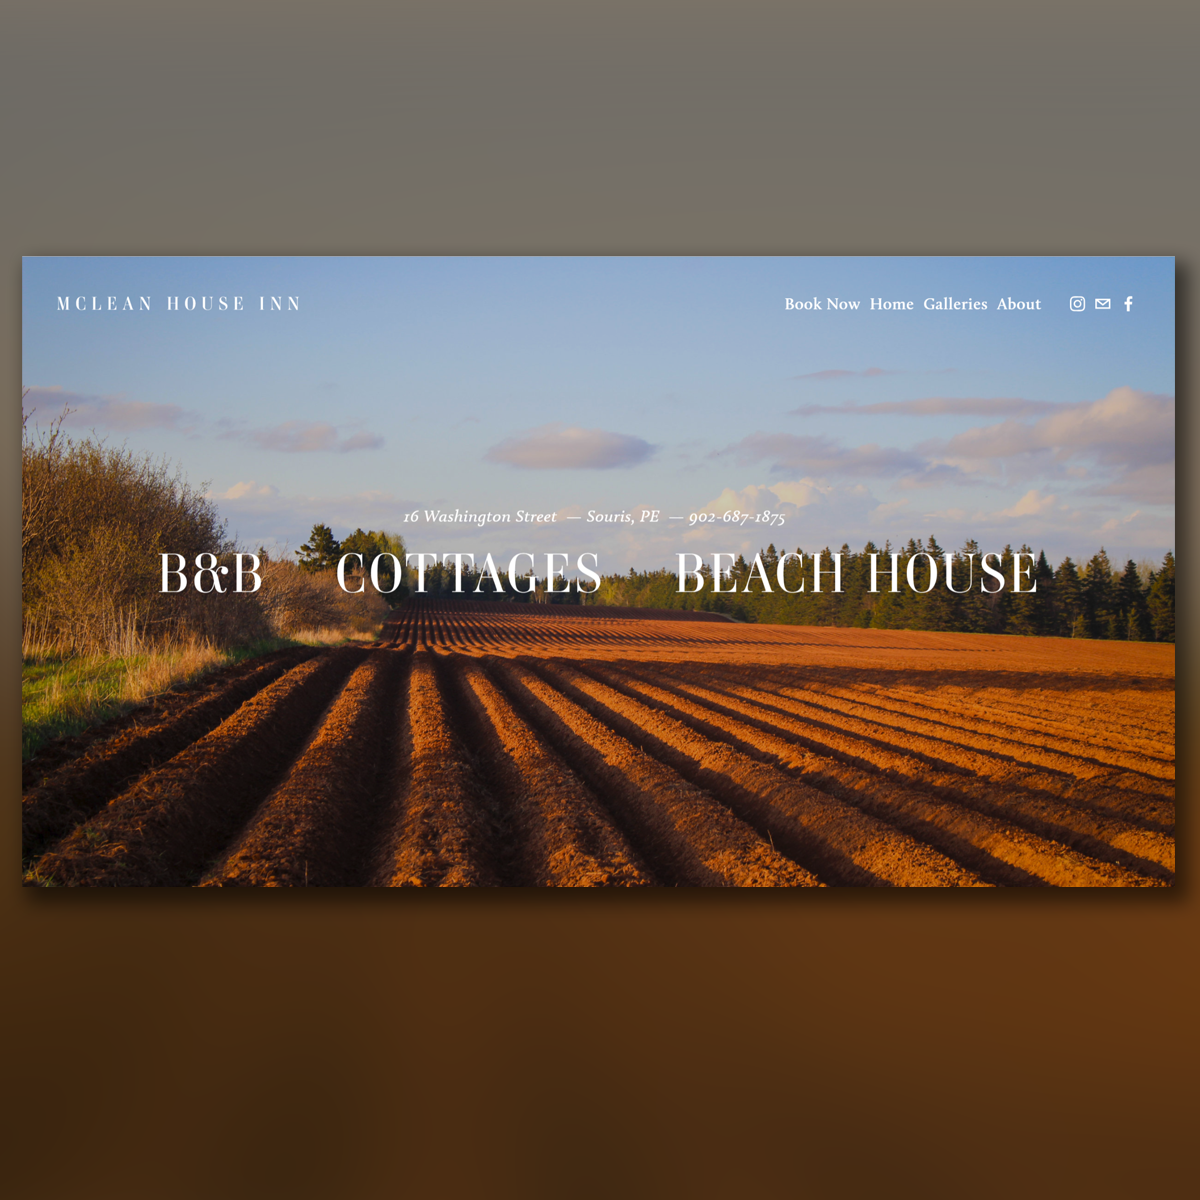 inn Accommodations Cottages beach ocean front Booking Canada Prince Edward Island Website Design Web